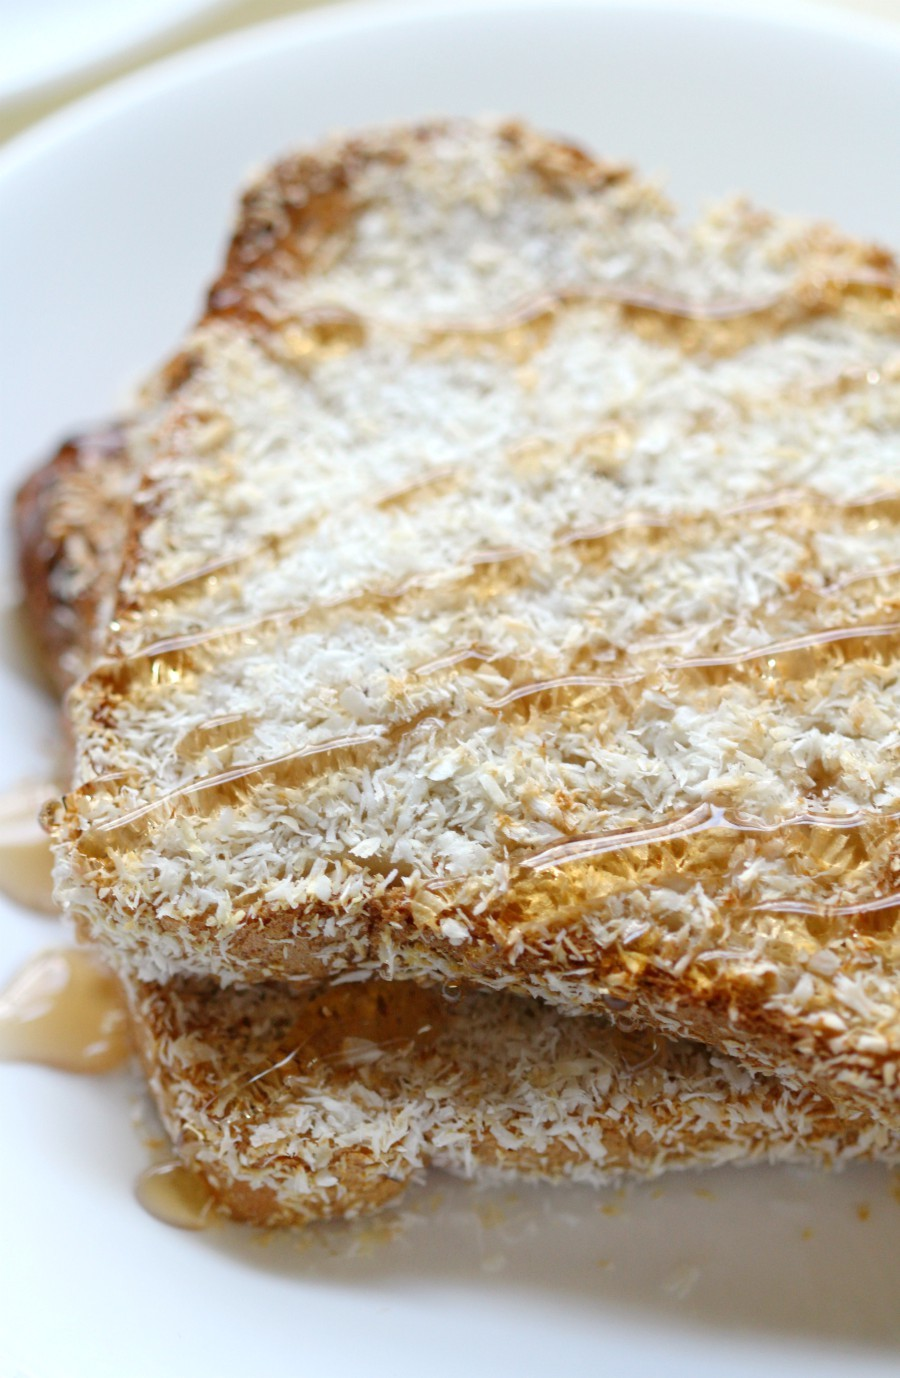 Air Fryer Toasted Coconut French Toast (Gluten-Free, Vegan) | Strength and Sunshine @RebeccaGF666 The healthiest way to make French toast for breakfast! Air Fryer Toasted Coconut French Toast made without the oil and is a gluten-free, vegan, & top 8 allergy-free recipe you'll love! No soggy bread and only 4 ingredients to crisp coconut perfection! #frenchtoast #breakfast #airfryer #glutenfree #vegan #coconut